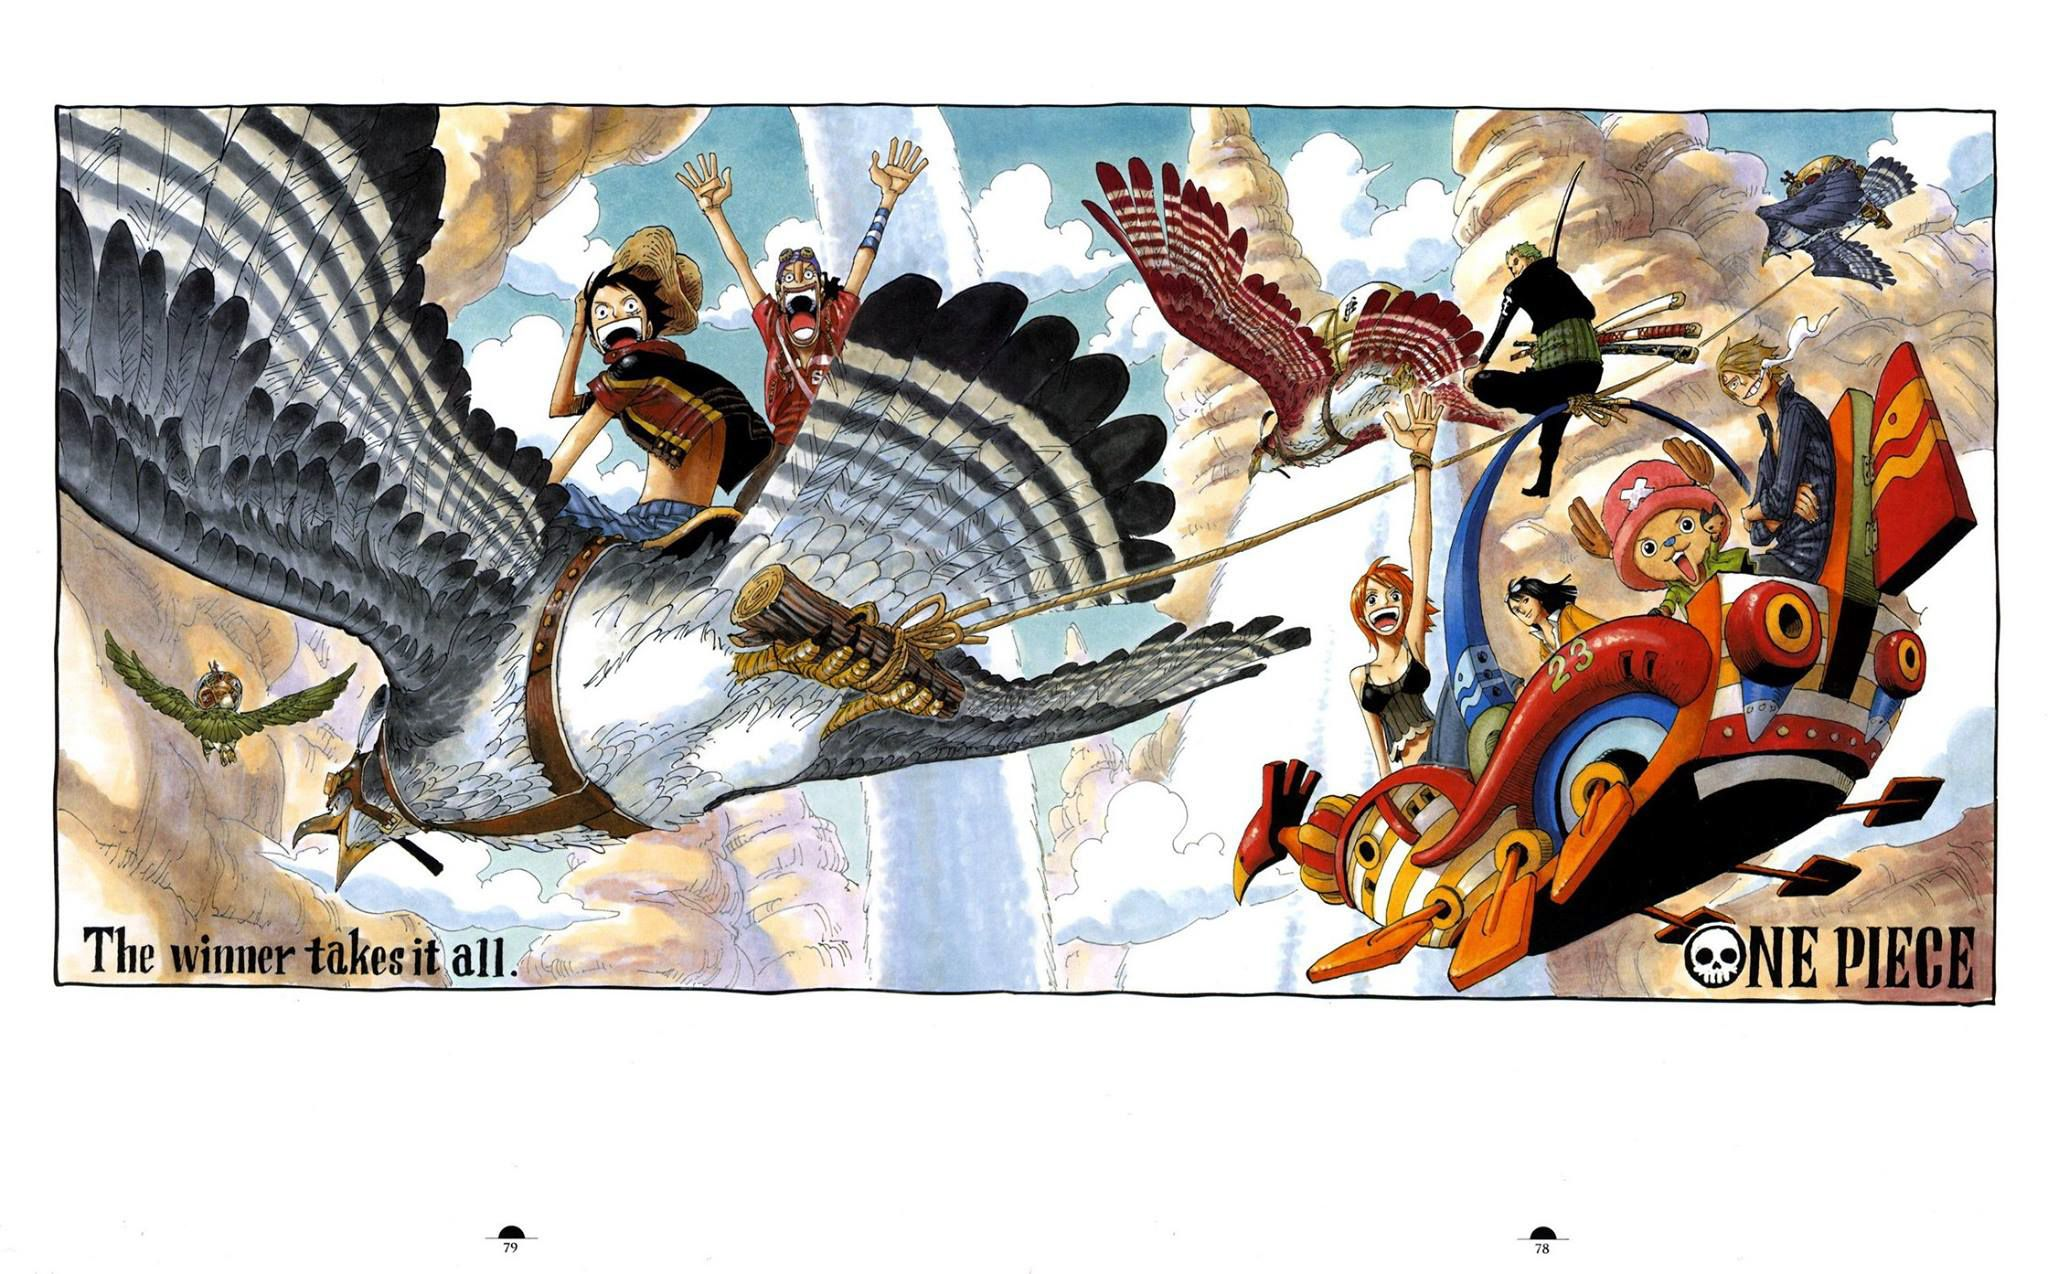 One Piece 0001 Art Colletion One Piece 0001 Art